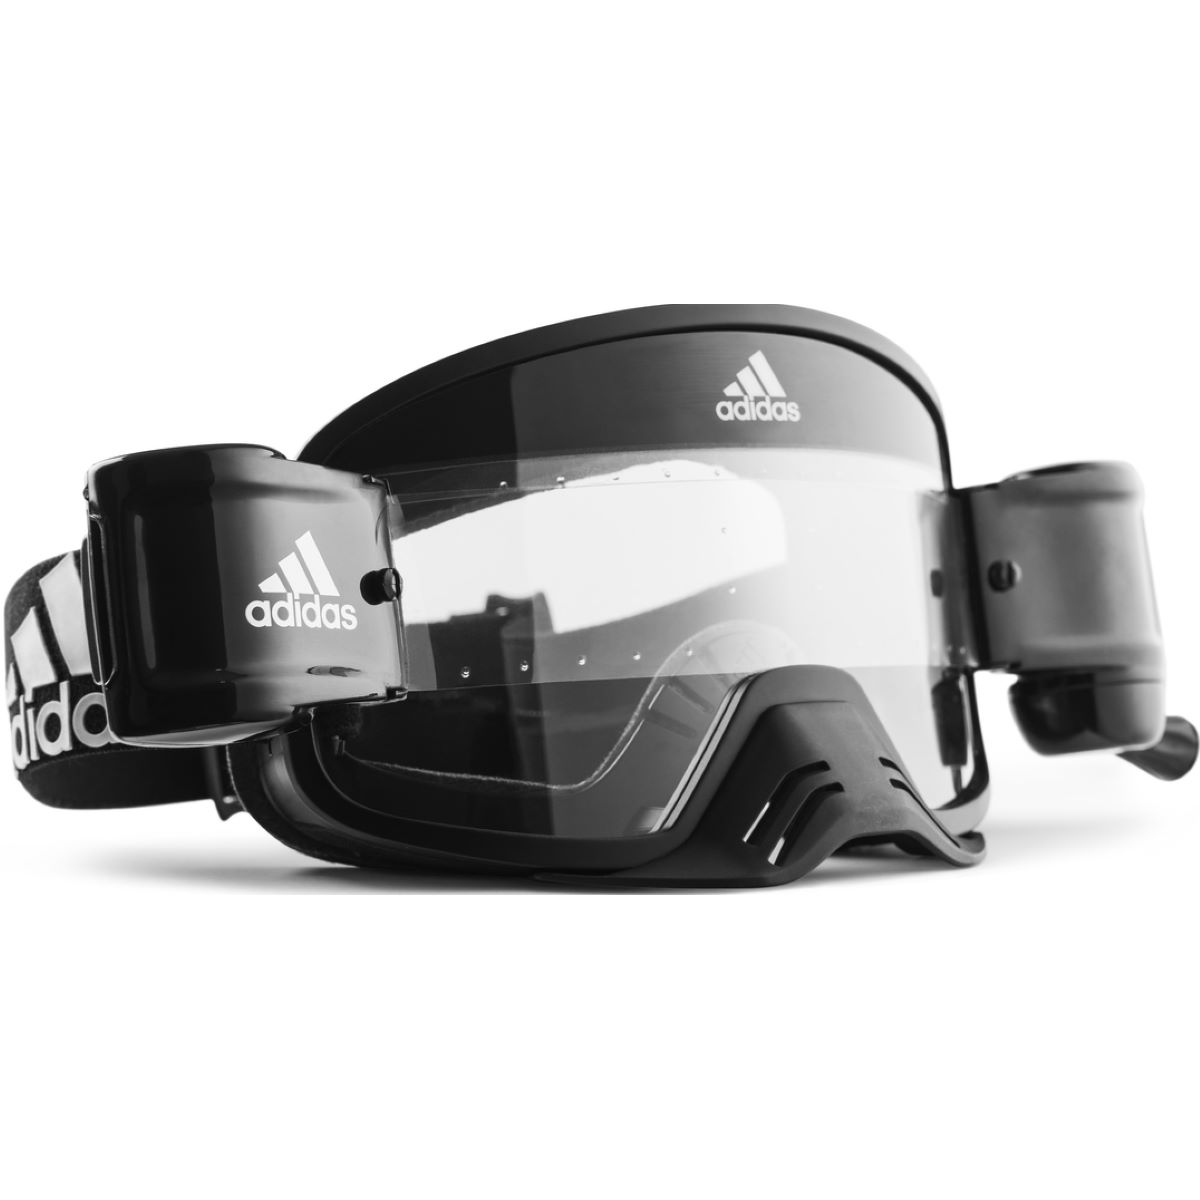 adidas Backland Dirt Clear Sonnenbrille (transparente Gläser mit Roll-Off-Option) - Radsportbrillen